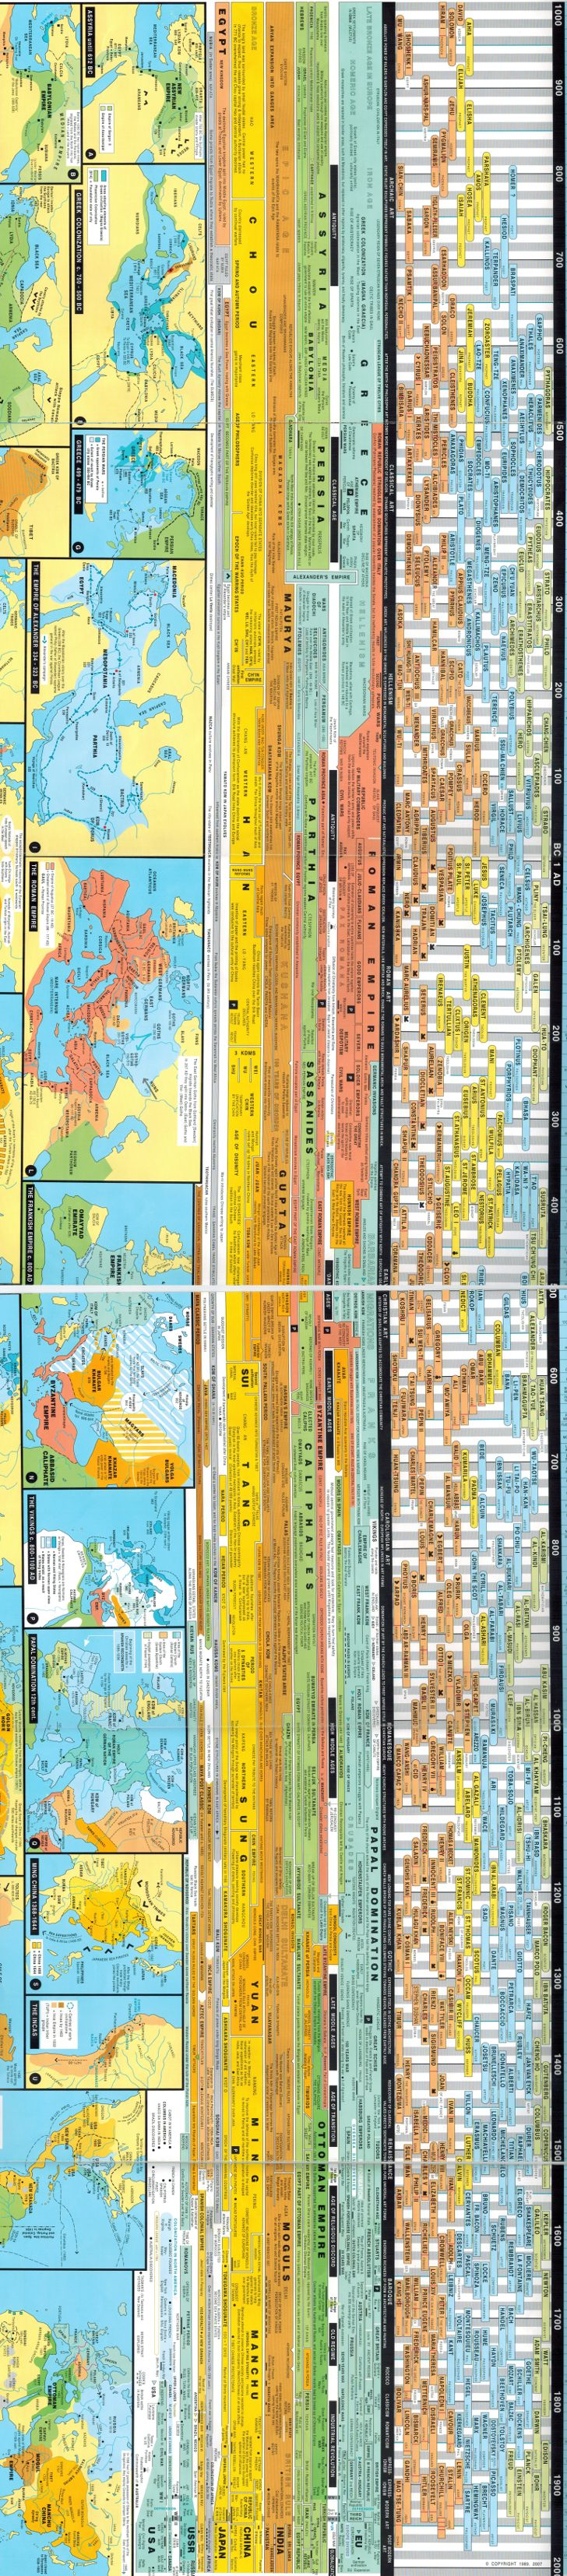 World History Chart by Andreas Nothiger